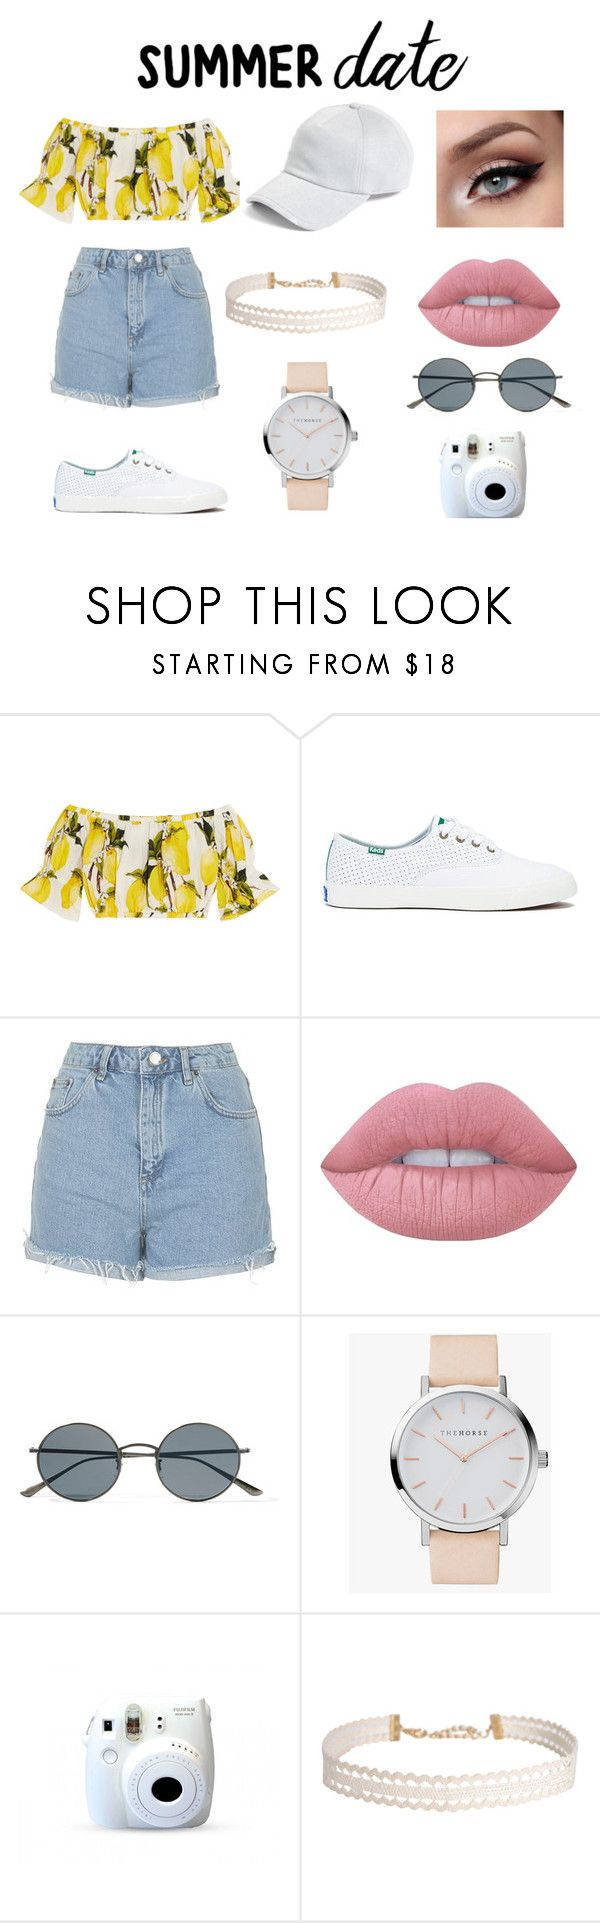 """""""Simple summer date outfit"""" by cagbsjiom ❤ liked on Polyvore featuring Dolce&Gabbana, Keds, Topshop, Lime Crime, Oliver Peoples, The Horse, Fuji, Humble Chic, rag & bone and statefair"""